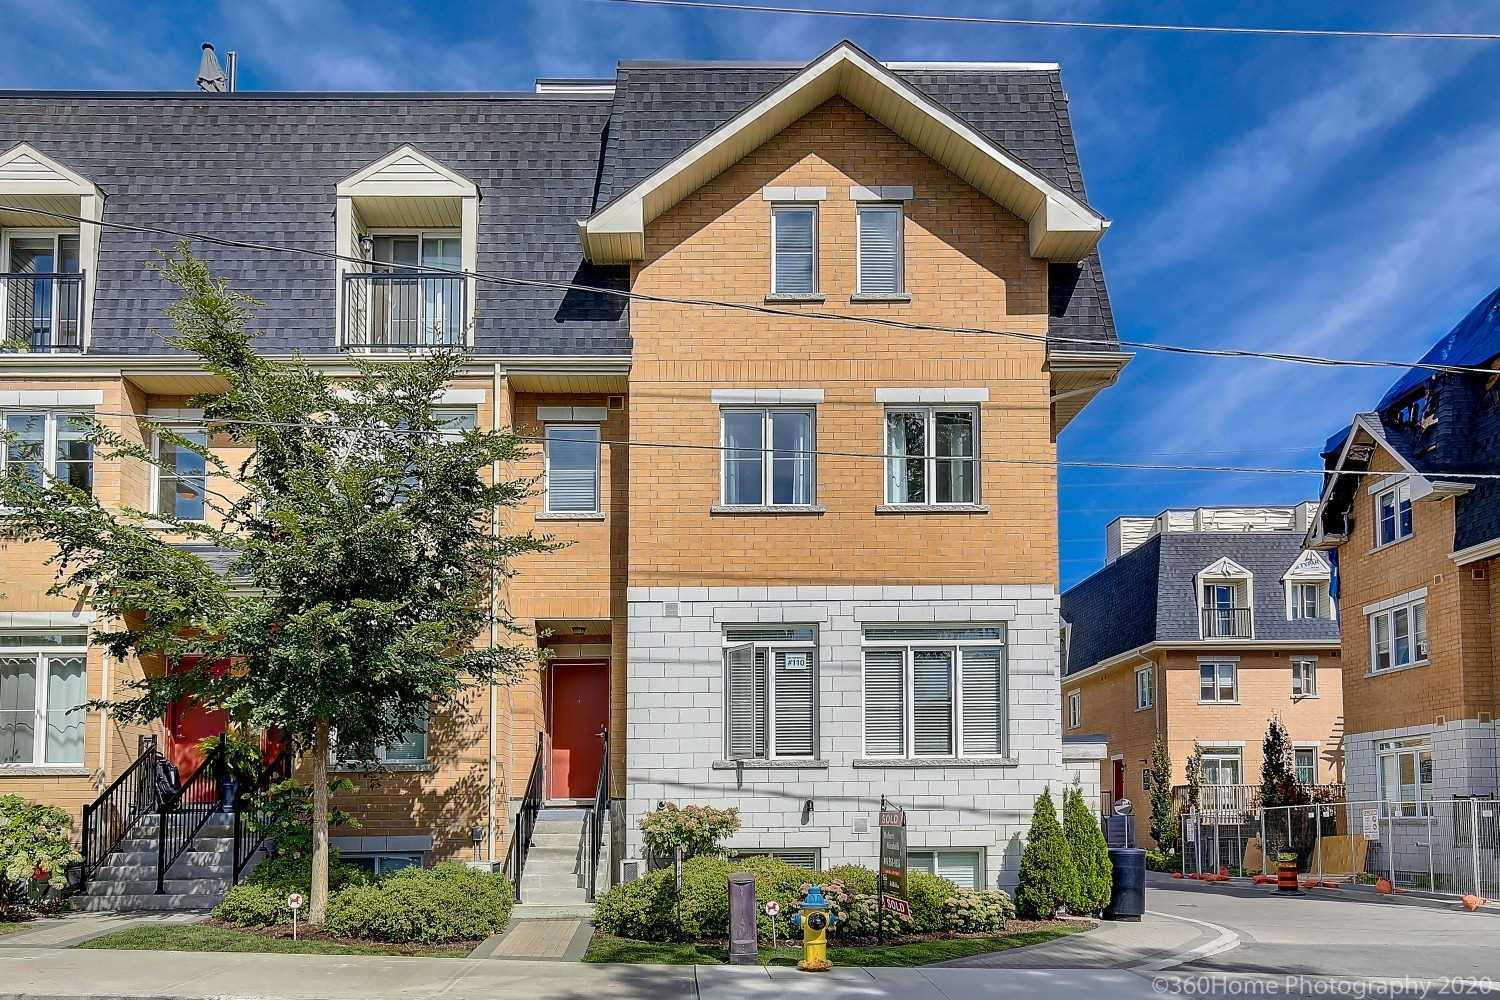 Chic & Elegant 2Yr New Executive Townhouse In Briar Hill, Steps To Allen Subway And 2021 L.R.T., Ttc, Yorkdale Etc..  Spacious And Bright 923 Sq. Ft. + Large 175 Sq/Ft. Roof Top Terrace (Largest In Complex) Views Of Cn Tower,1+1 Bdrm, 2 Baths, Custom Upgrades Thru-Out: Granite Counter Tops, 9Ft High And Smooth Ceilings, Extra High Custom Cabinets, Cut Glass Bckplsh, Goose Neck Facet, Upgraded Larger Trim And Basebrds, Balcony Frm Mster Bdrm, Must See !!